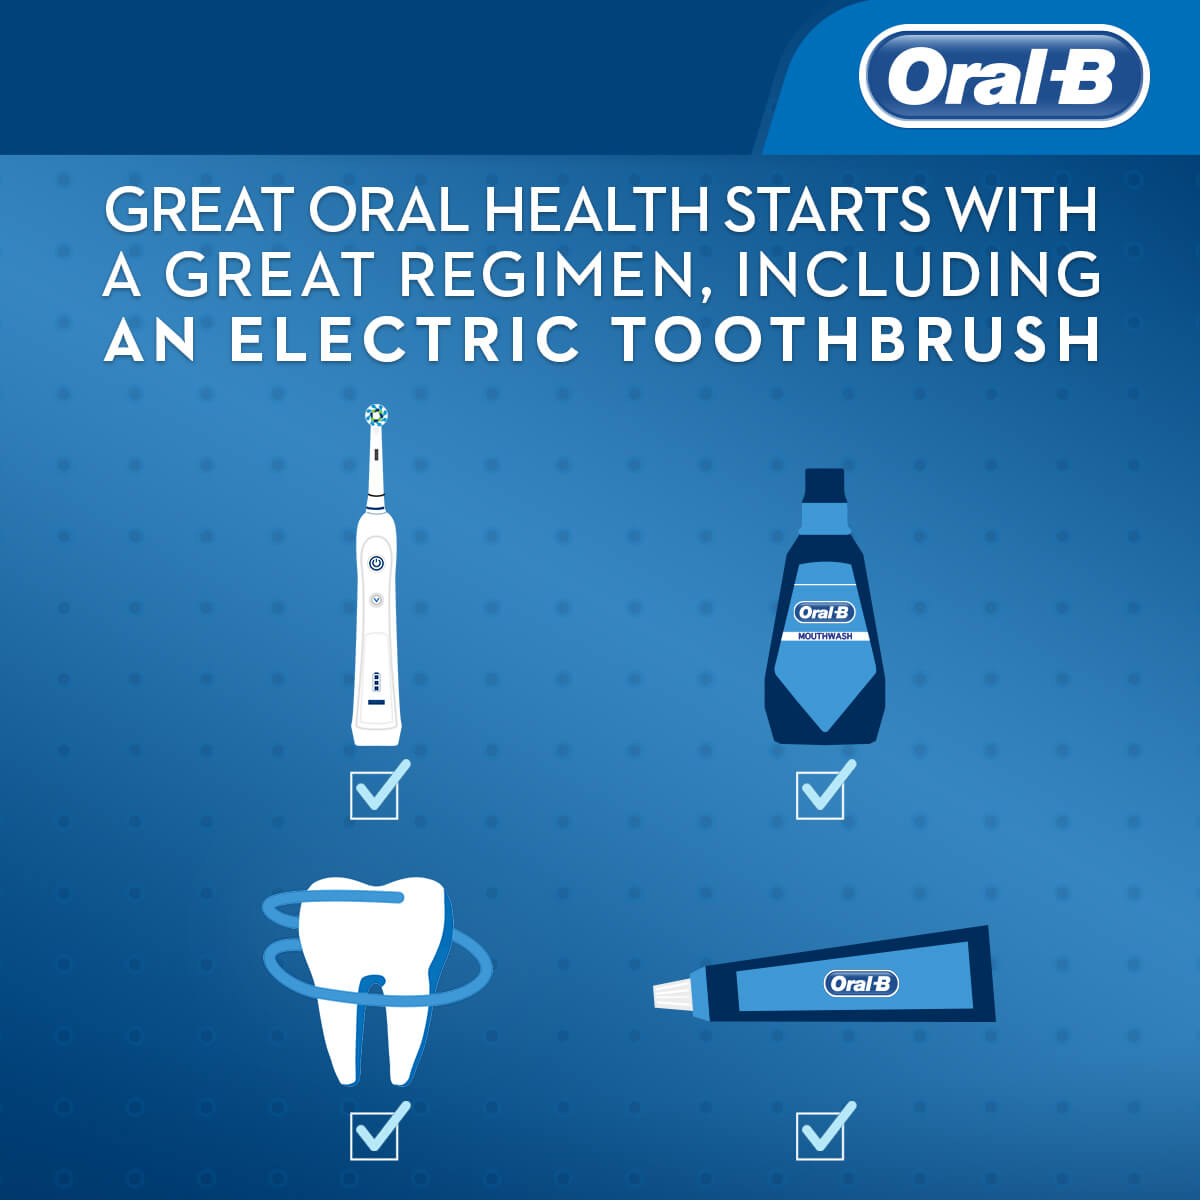 The Benefits Of Oral-B Electric Toothbrush vs. Battery or Manual